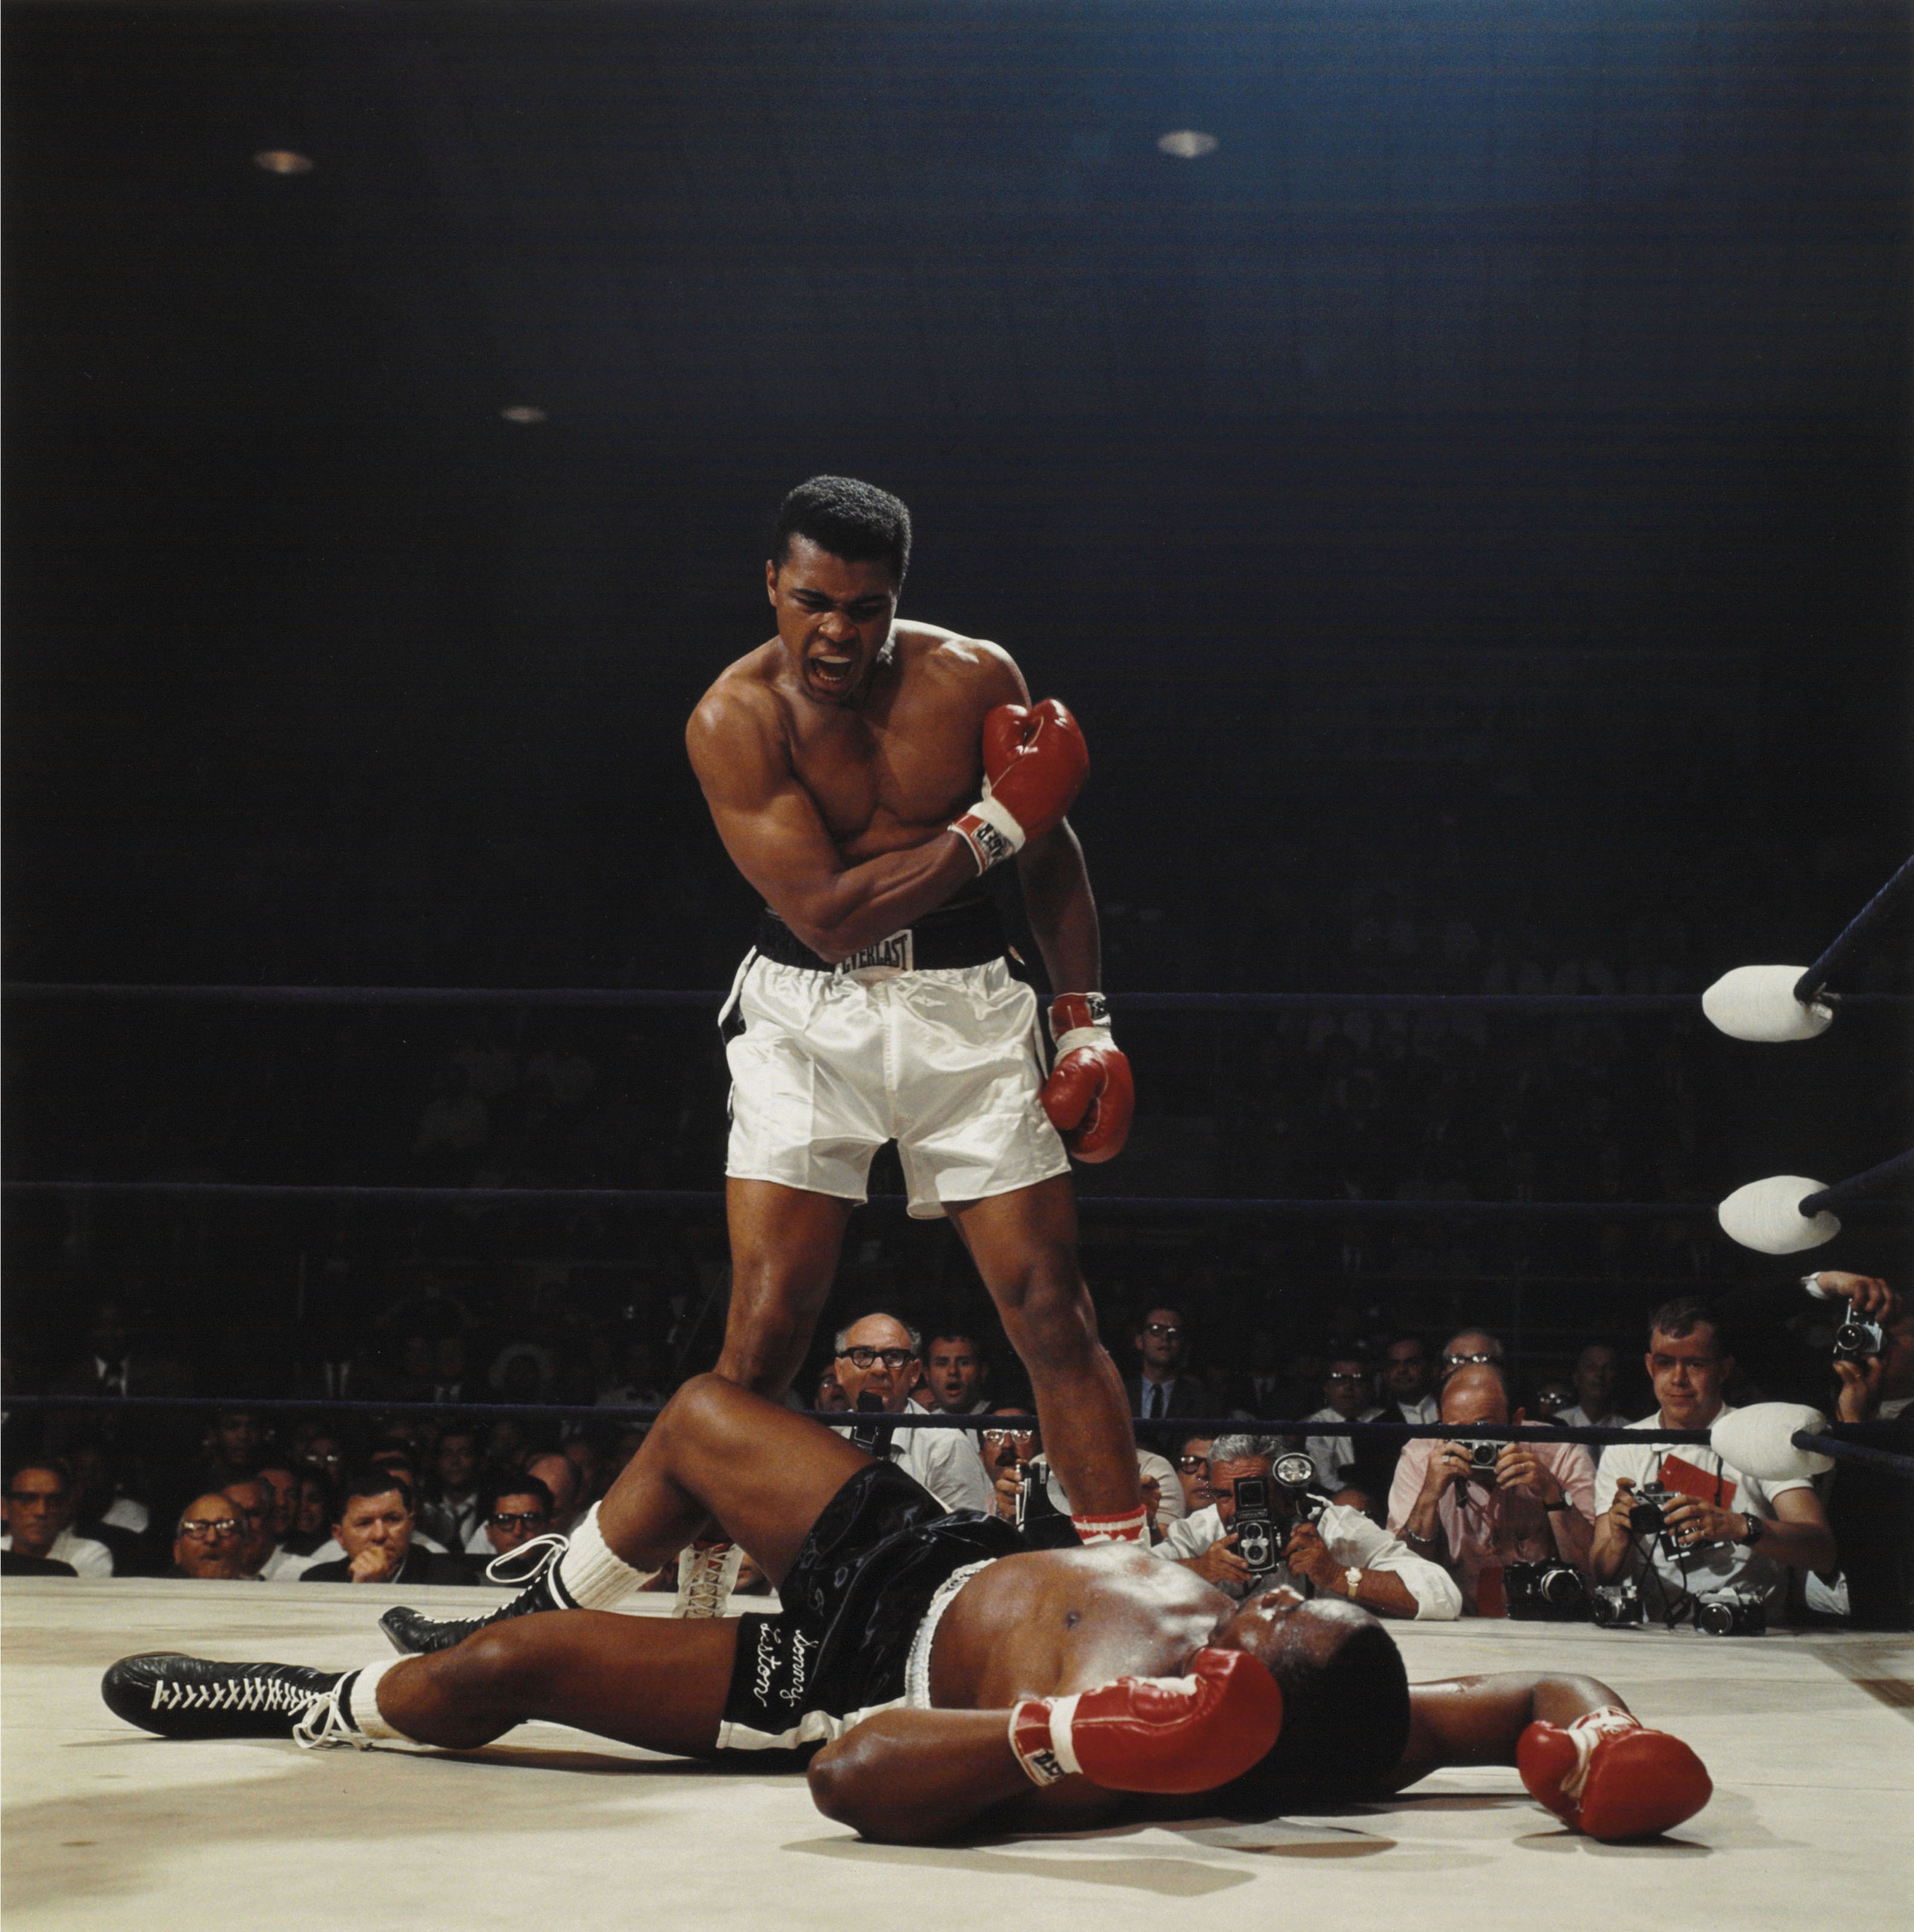 Muhammad Ali, first round knockout of Sonny Liston, St. Dominic's Arena, Lewiston, Maine, 1965